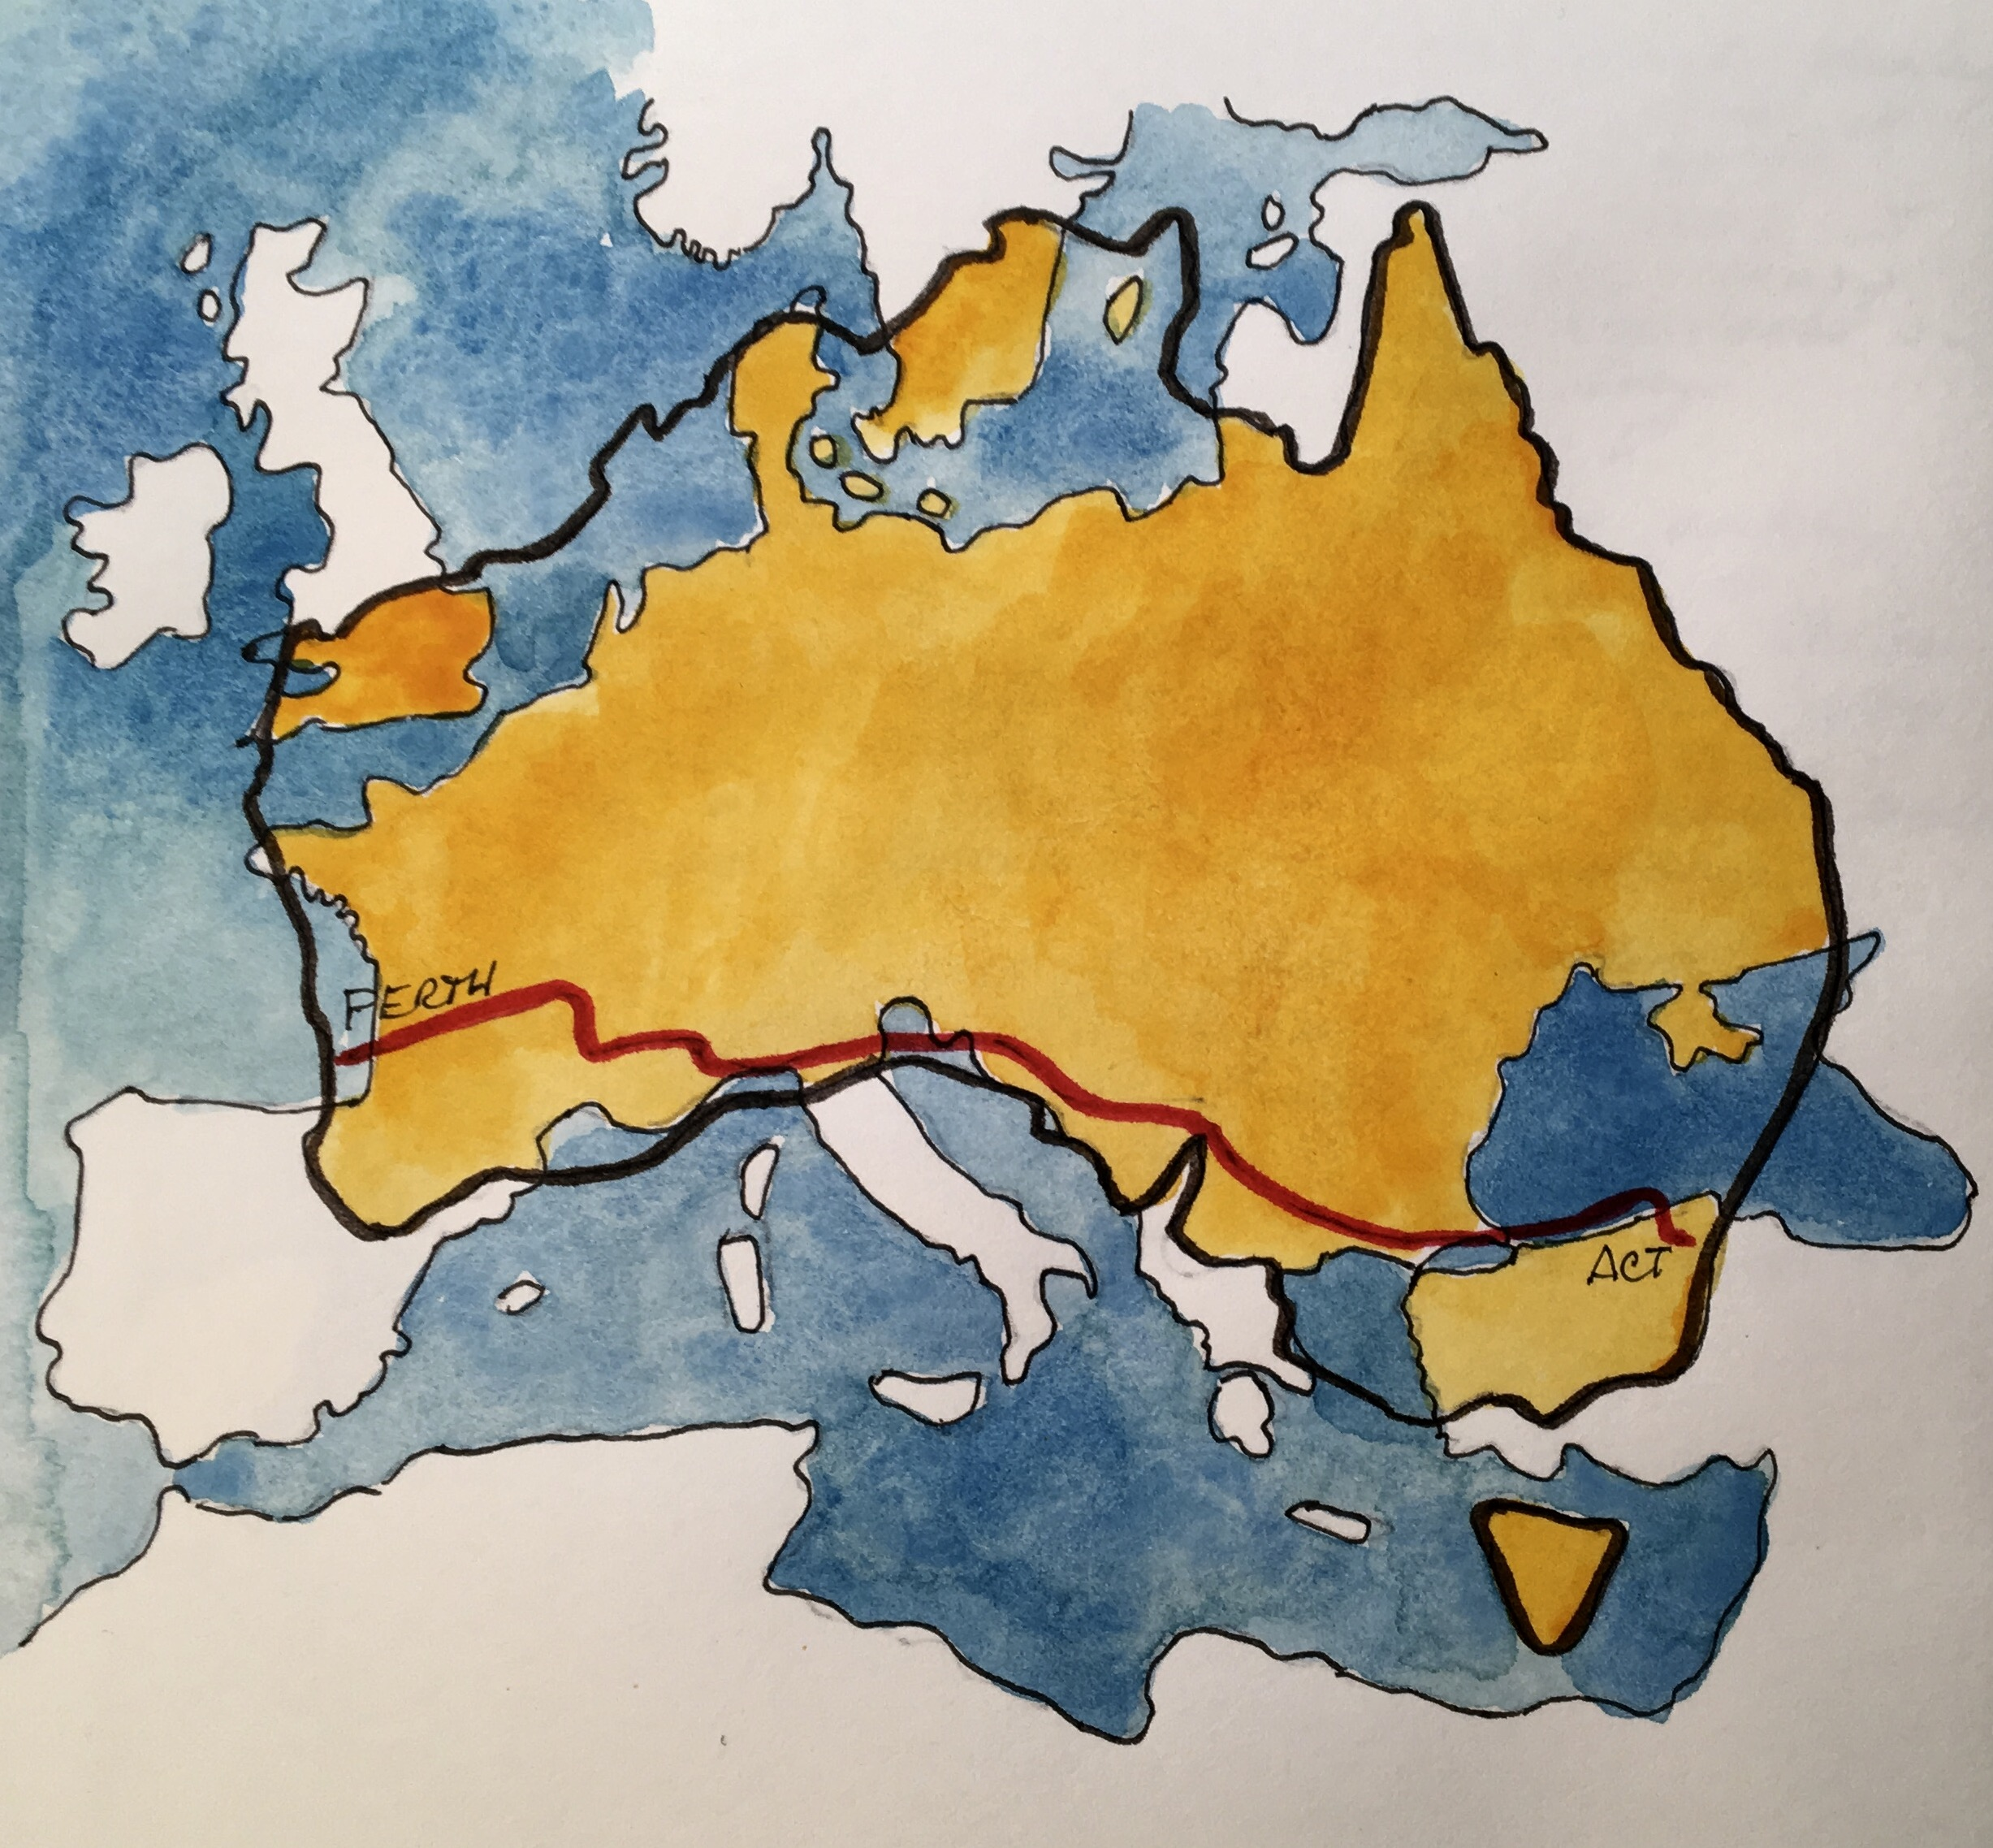 Map of Australia overlapping Europe